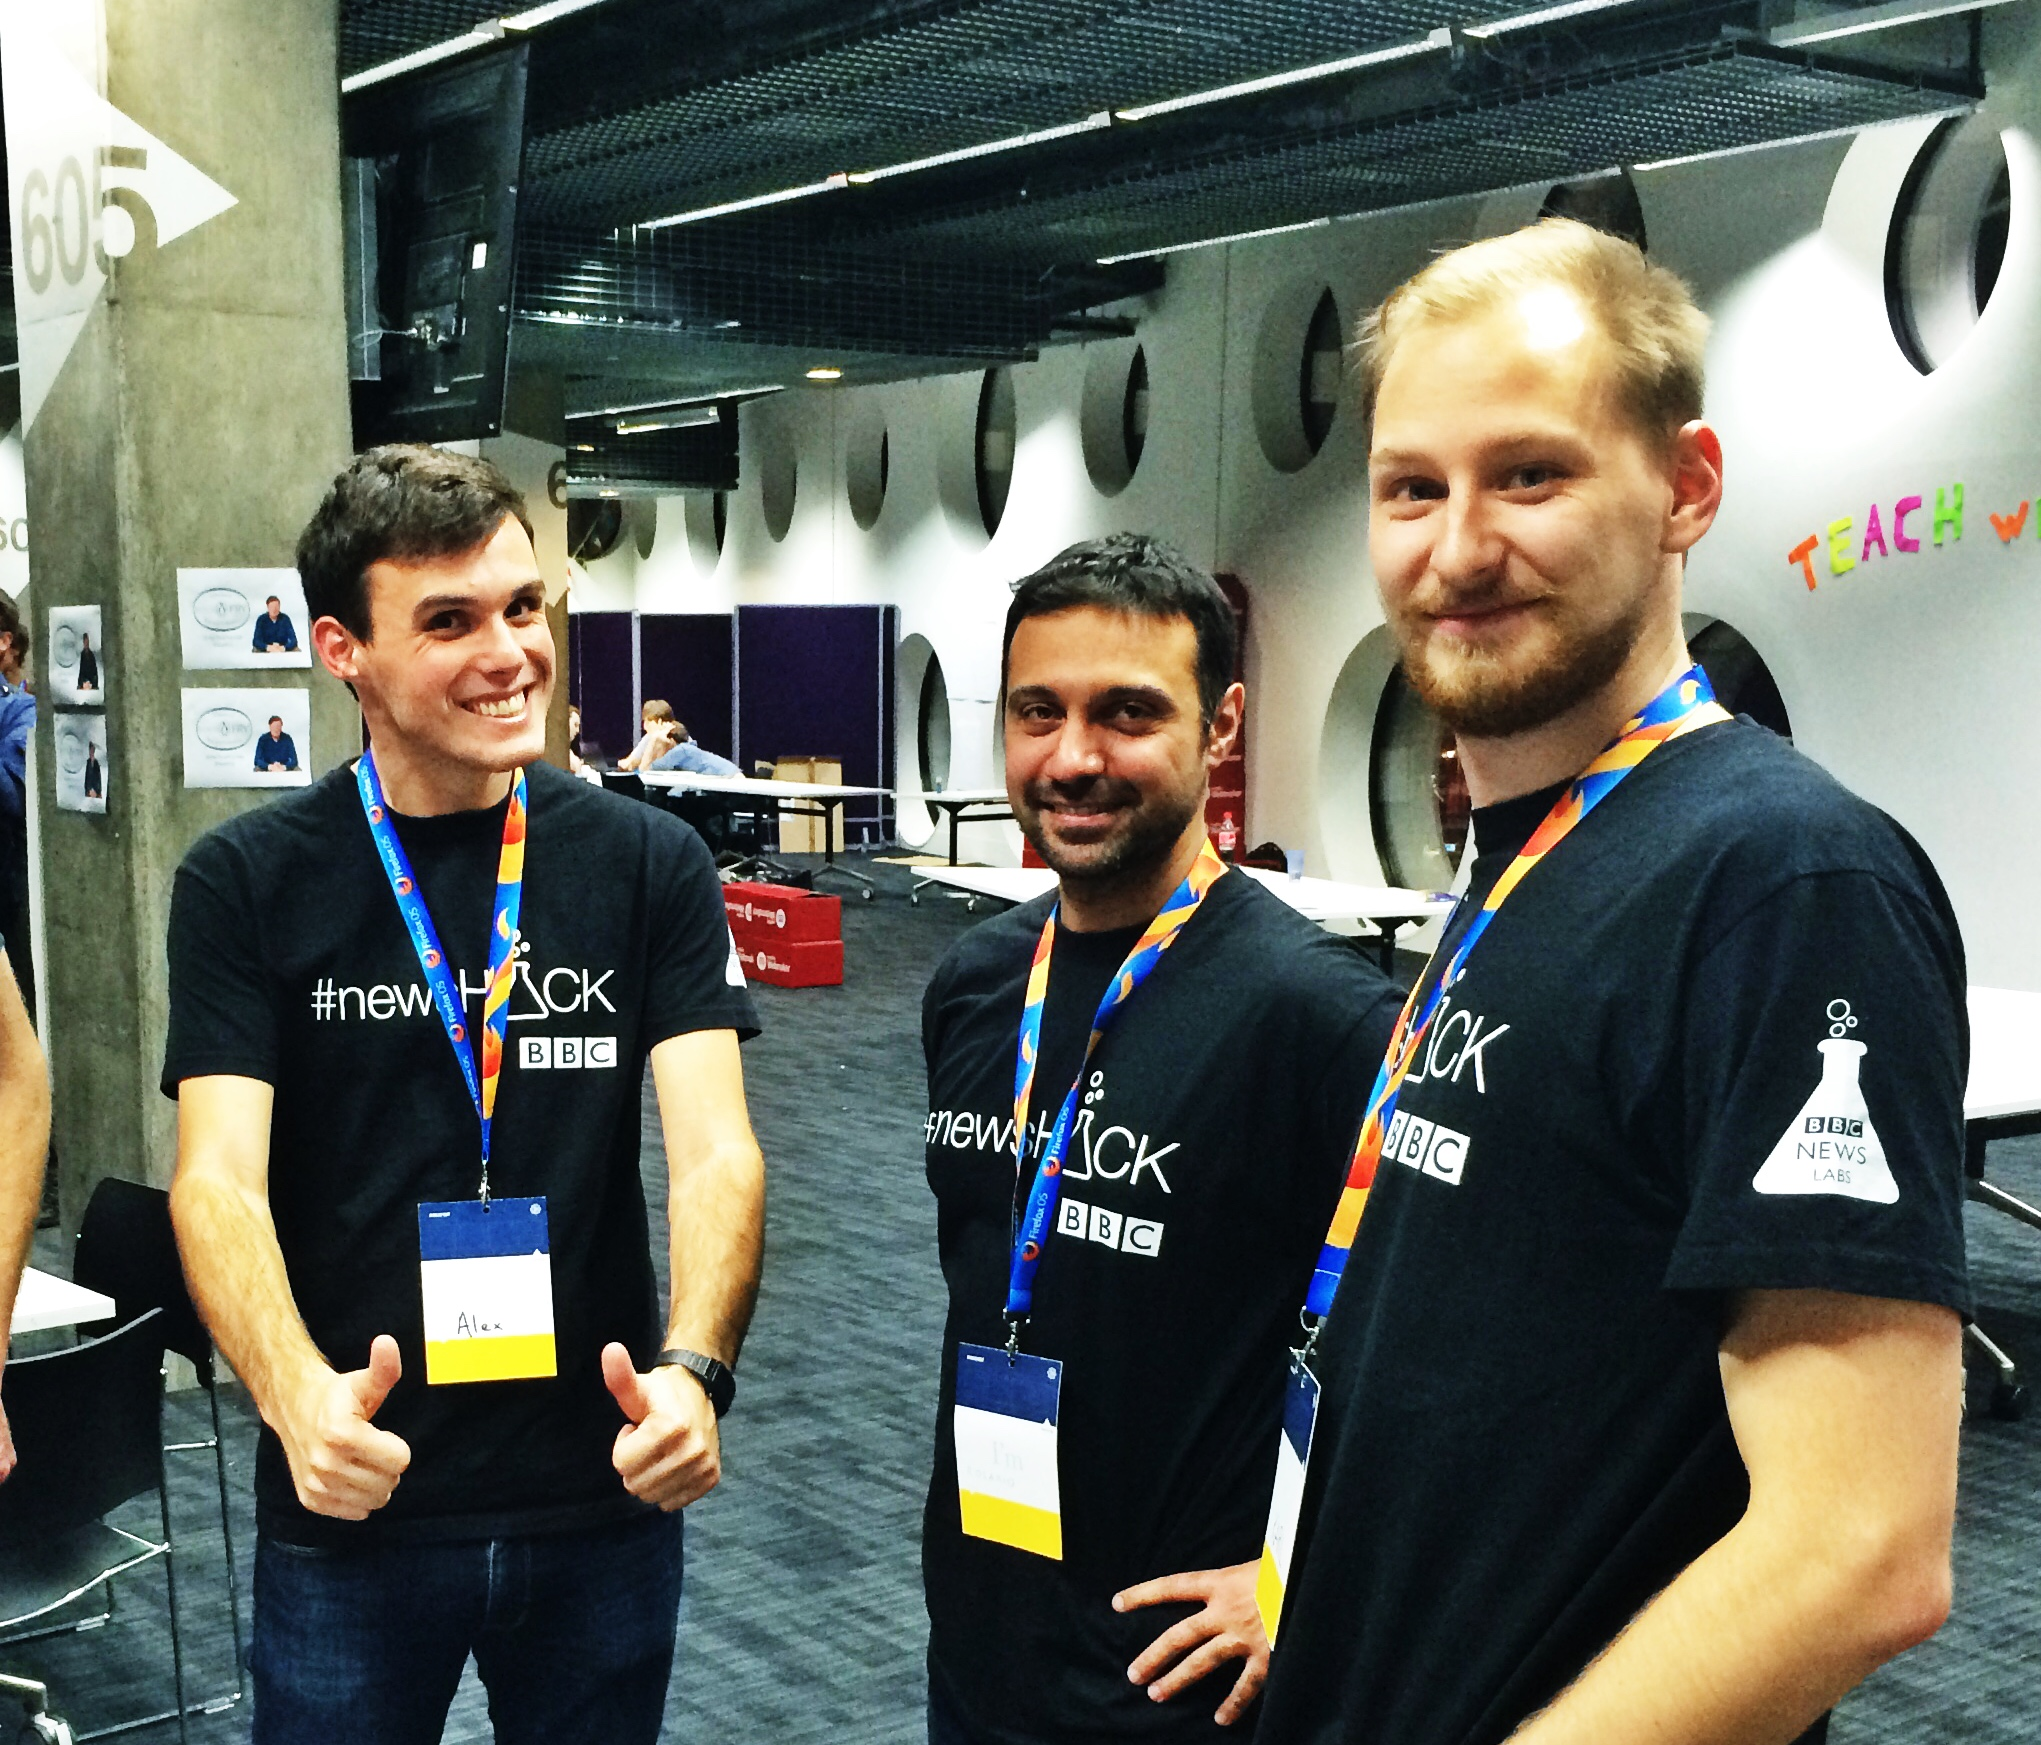 Alex Norton, Rosario Rascuna and Karl Sutt at Mozfest 2014 Science Fair with BBC News Labs